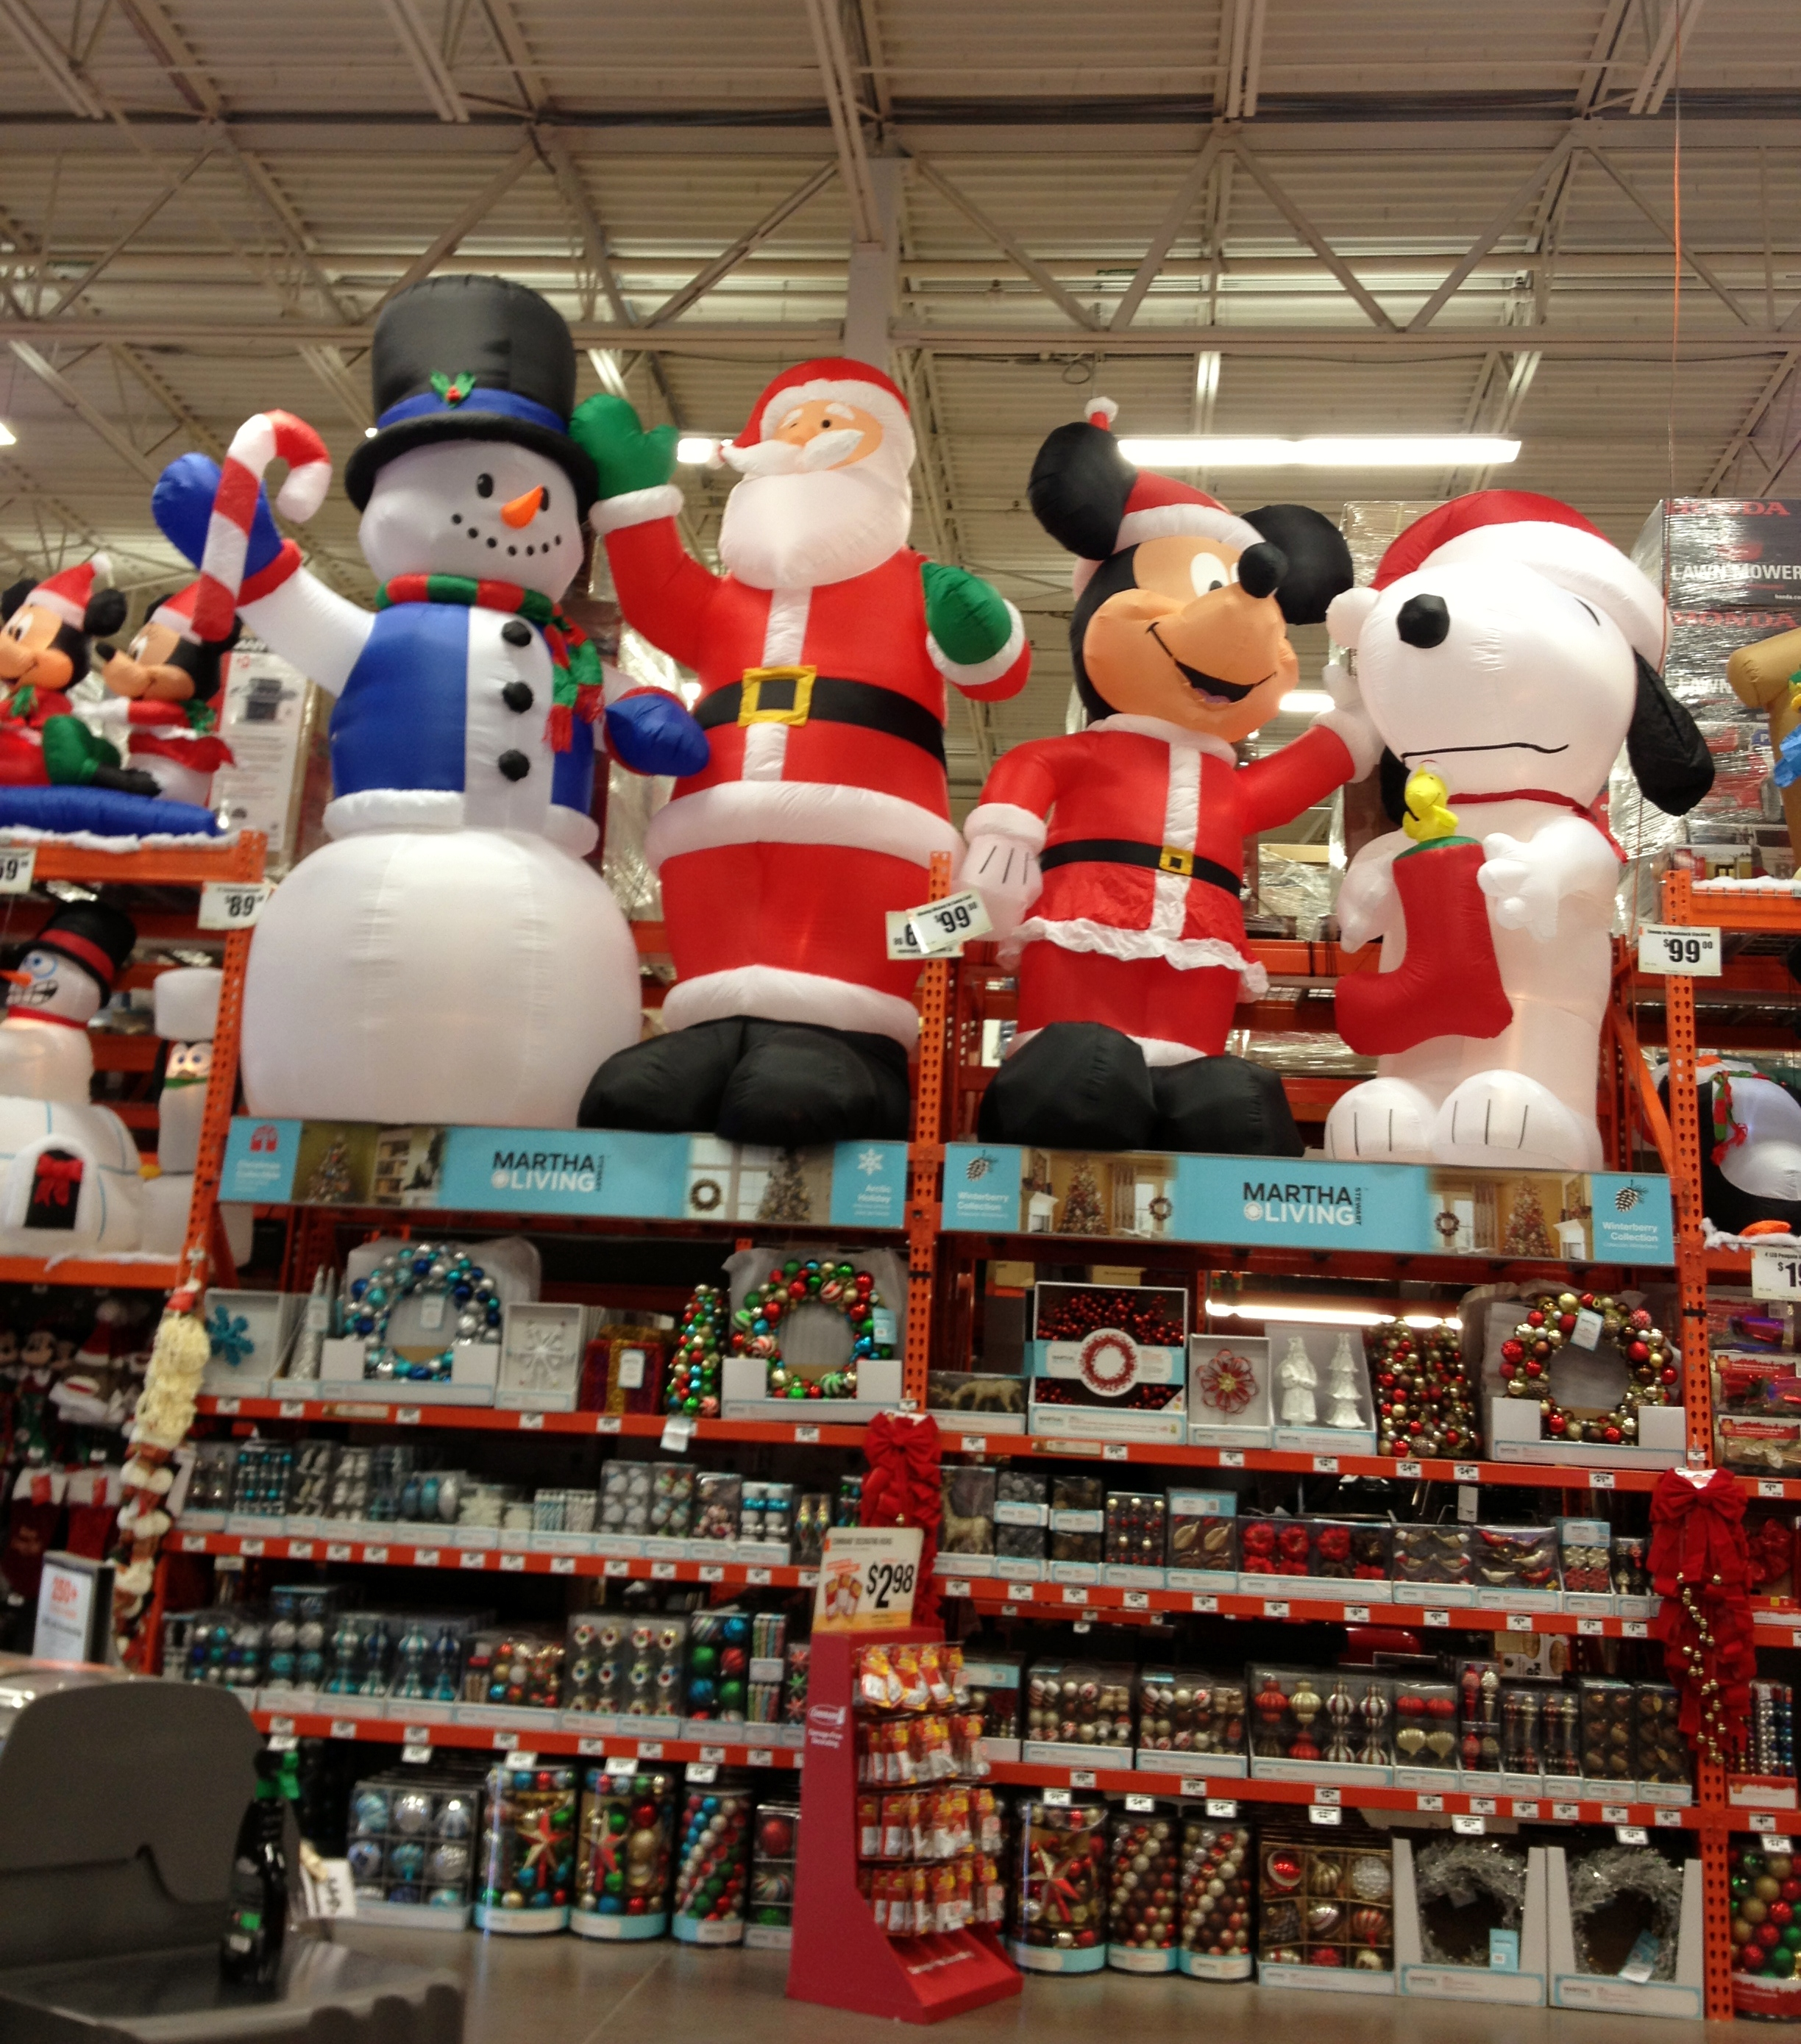 Home Depot Holiday Hours Dallas Cowboys Uniforms Christmas Lights And Applesauce